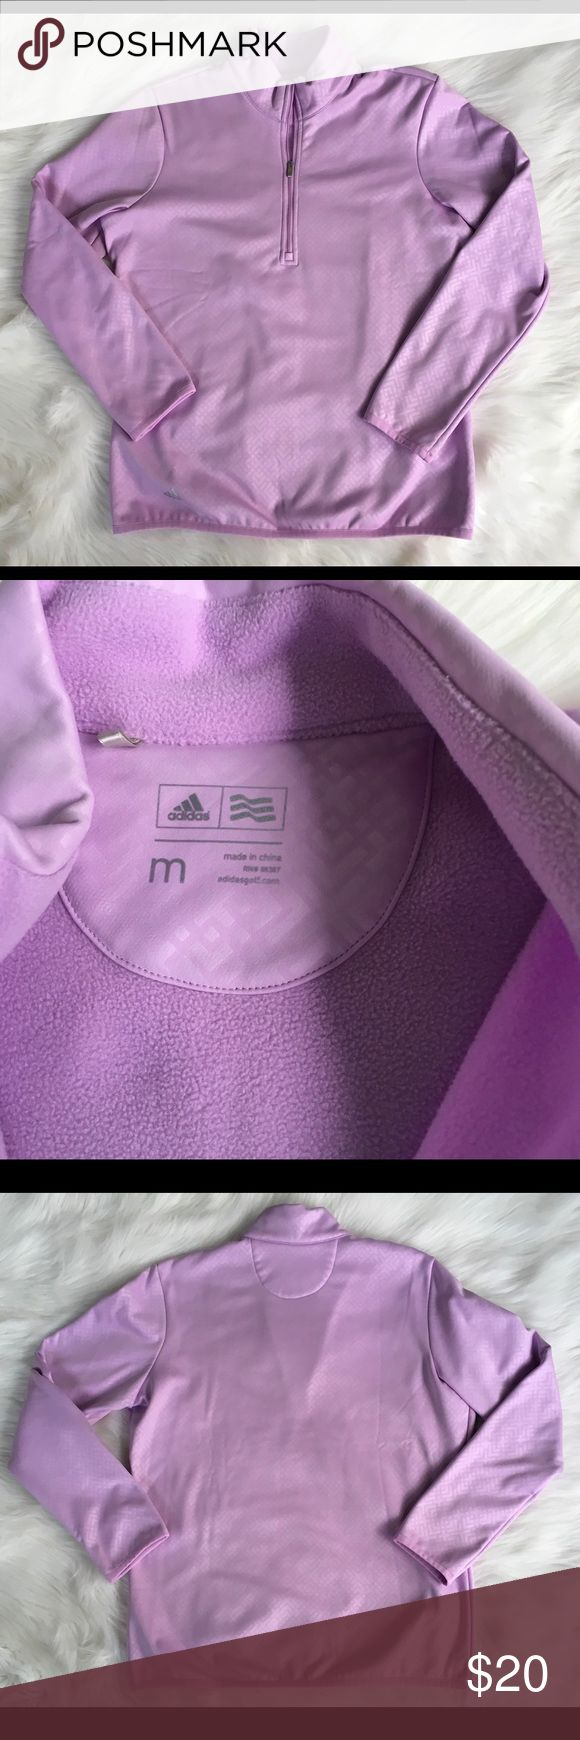 "Adidas Women's Athletic 1/4 Zip Pull Over Top SZ M Adidas Women's Outdoor Sportswear Golf 1/4 Zip Light Purple Fleece Jacket Pull Over Top Size Medium  Gently used  Arm Pit to Arm Pit 21"" laying flat  Total Length 26""  Clean and Smoke Free Home adidas Tops Sweatshirts & Hoodies"